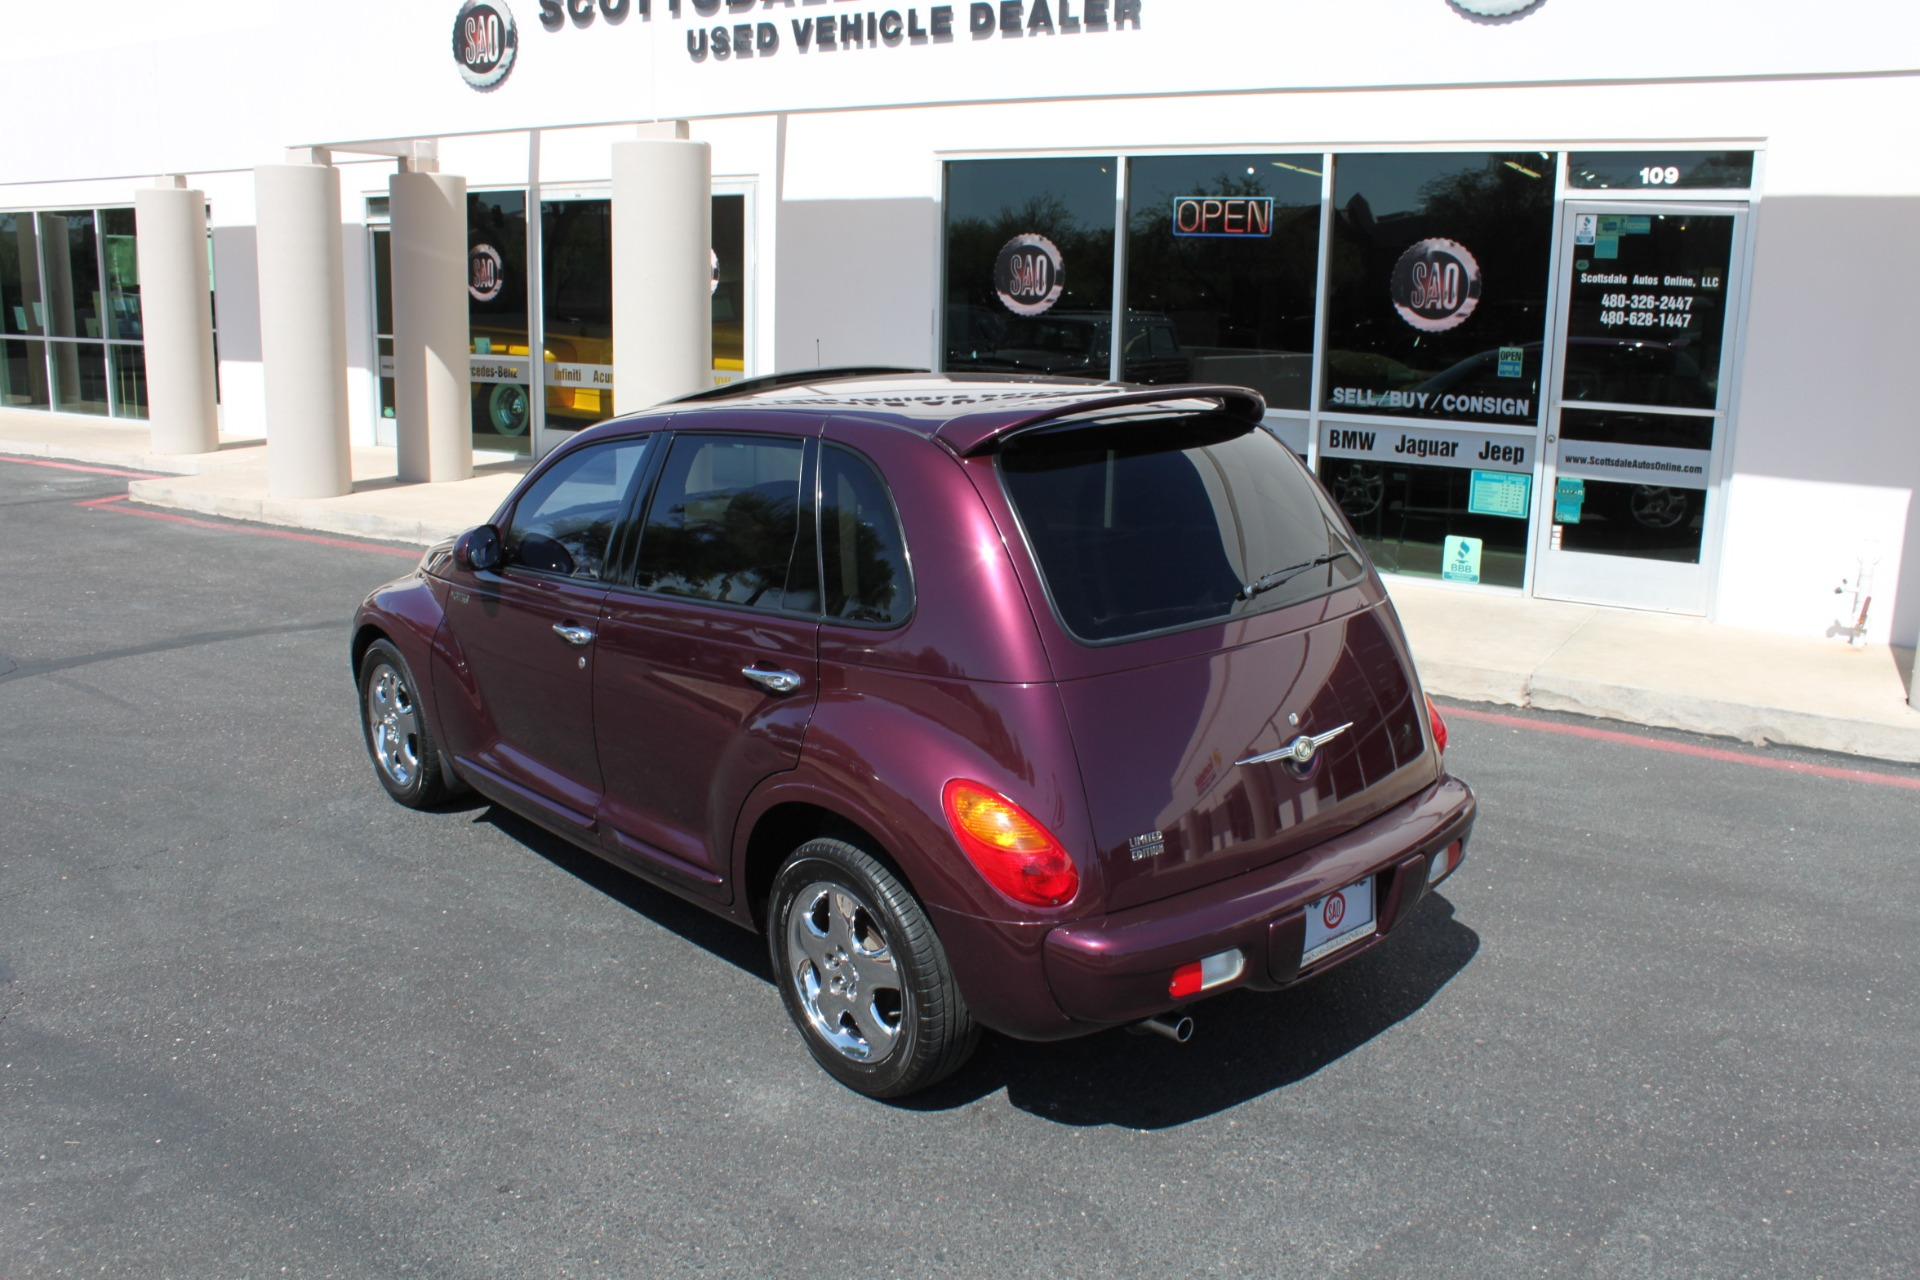 Used-2002-Chrysler-PT-Cruiser-Limited-Chalenger